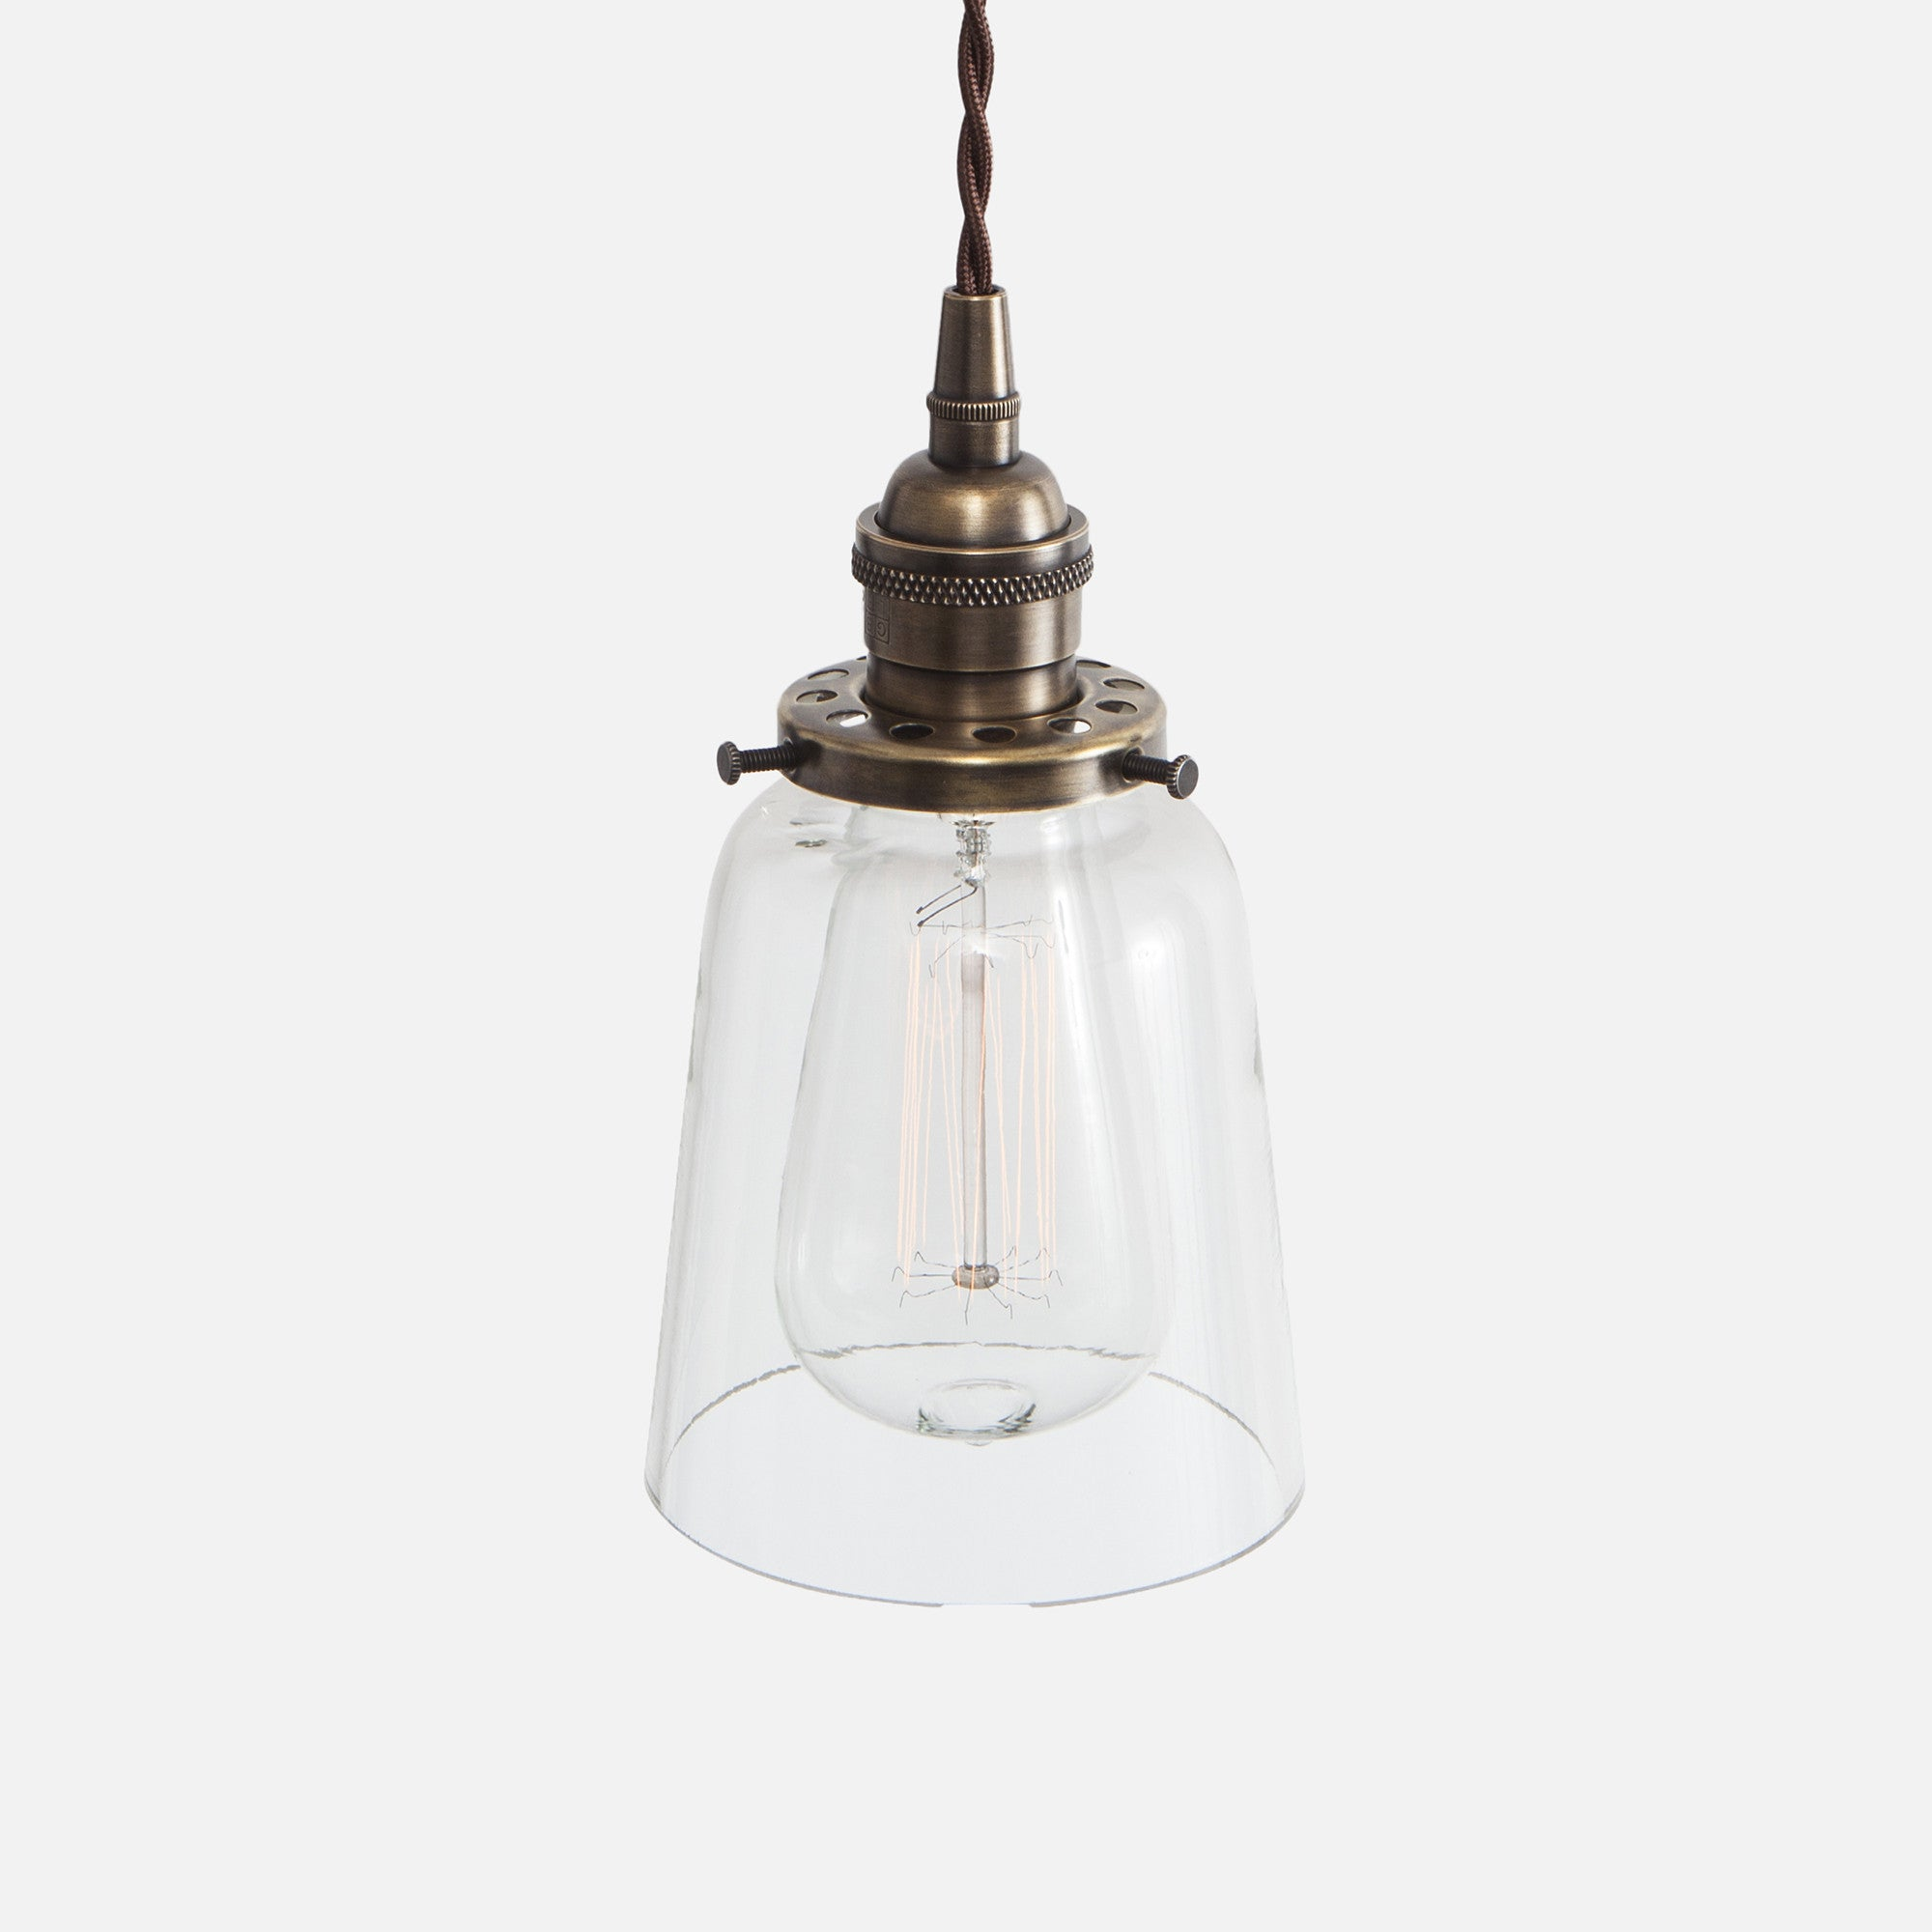 Vintage Socket Pendant Light - Clear Glass Straight Bell Shade - Vintage Brass Patina